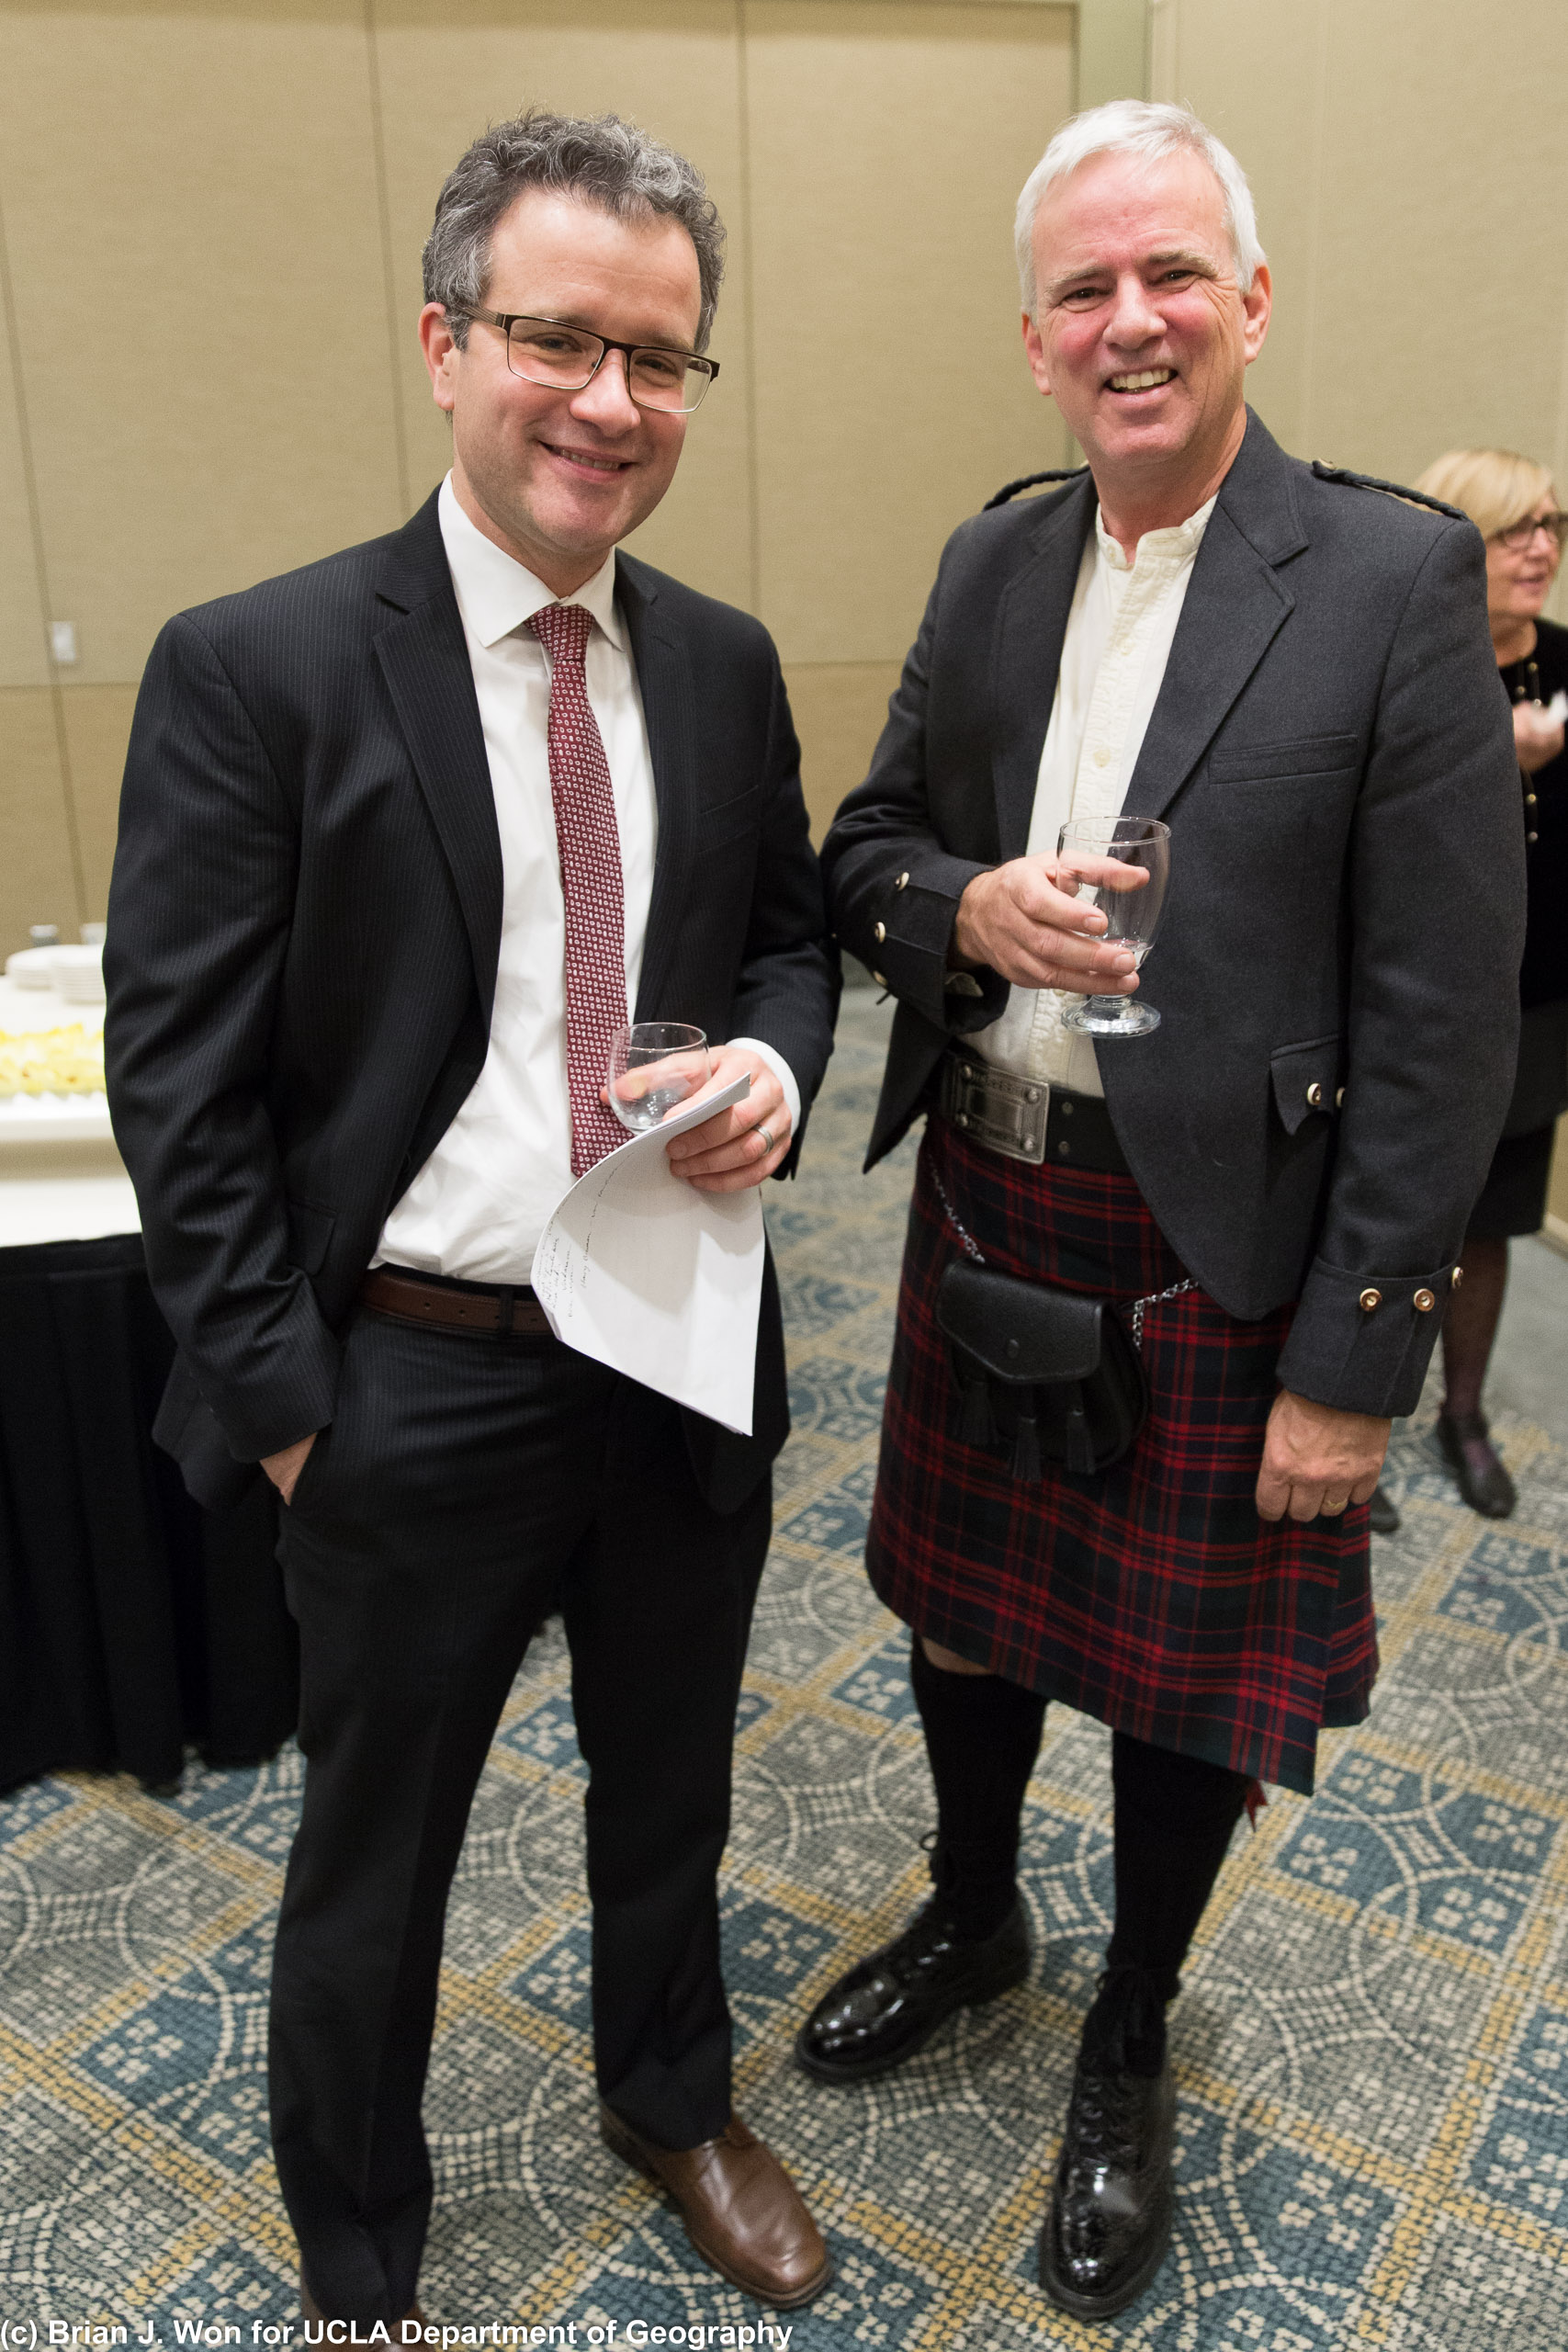 Professor and Department Chair Laurence C. Smith with Professor and Muir Chair Glen MacDonald